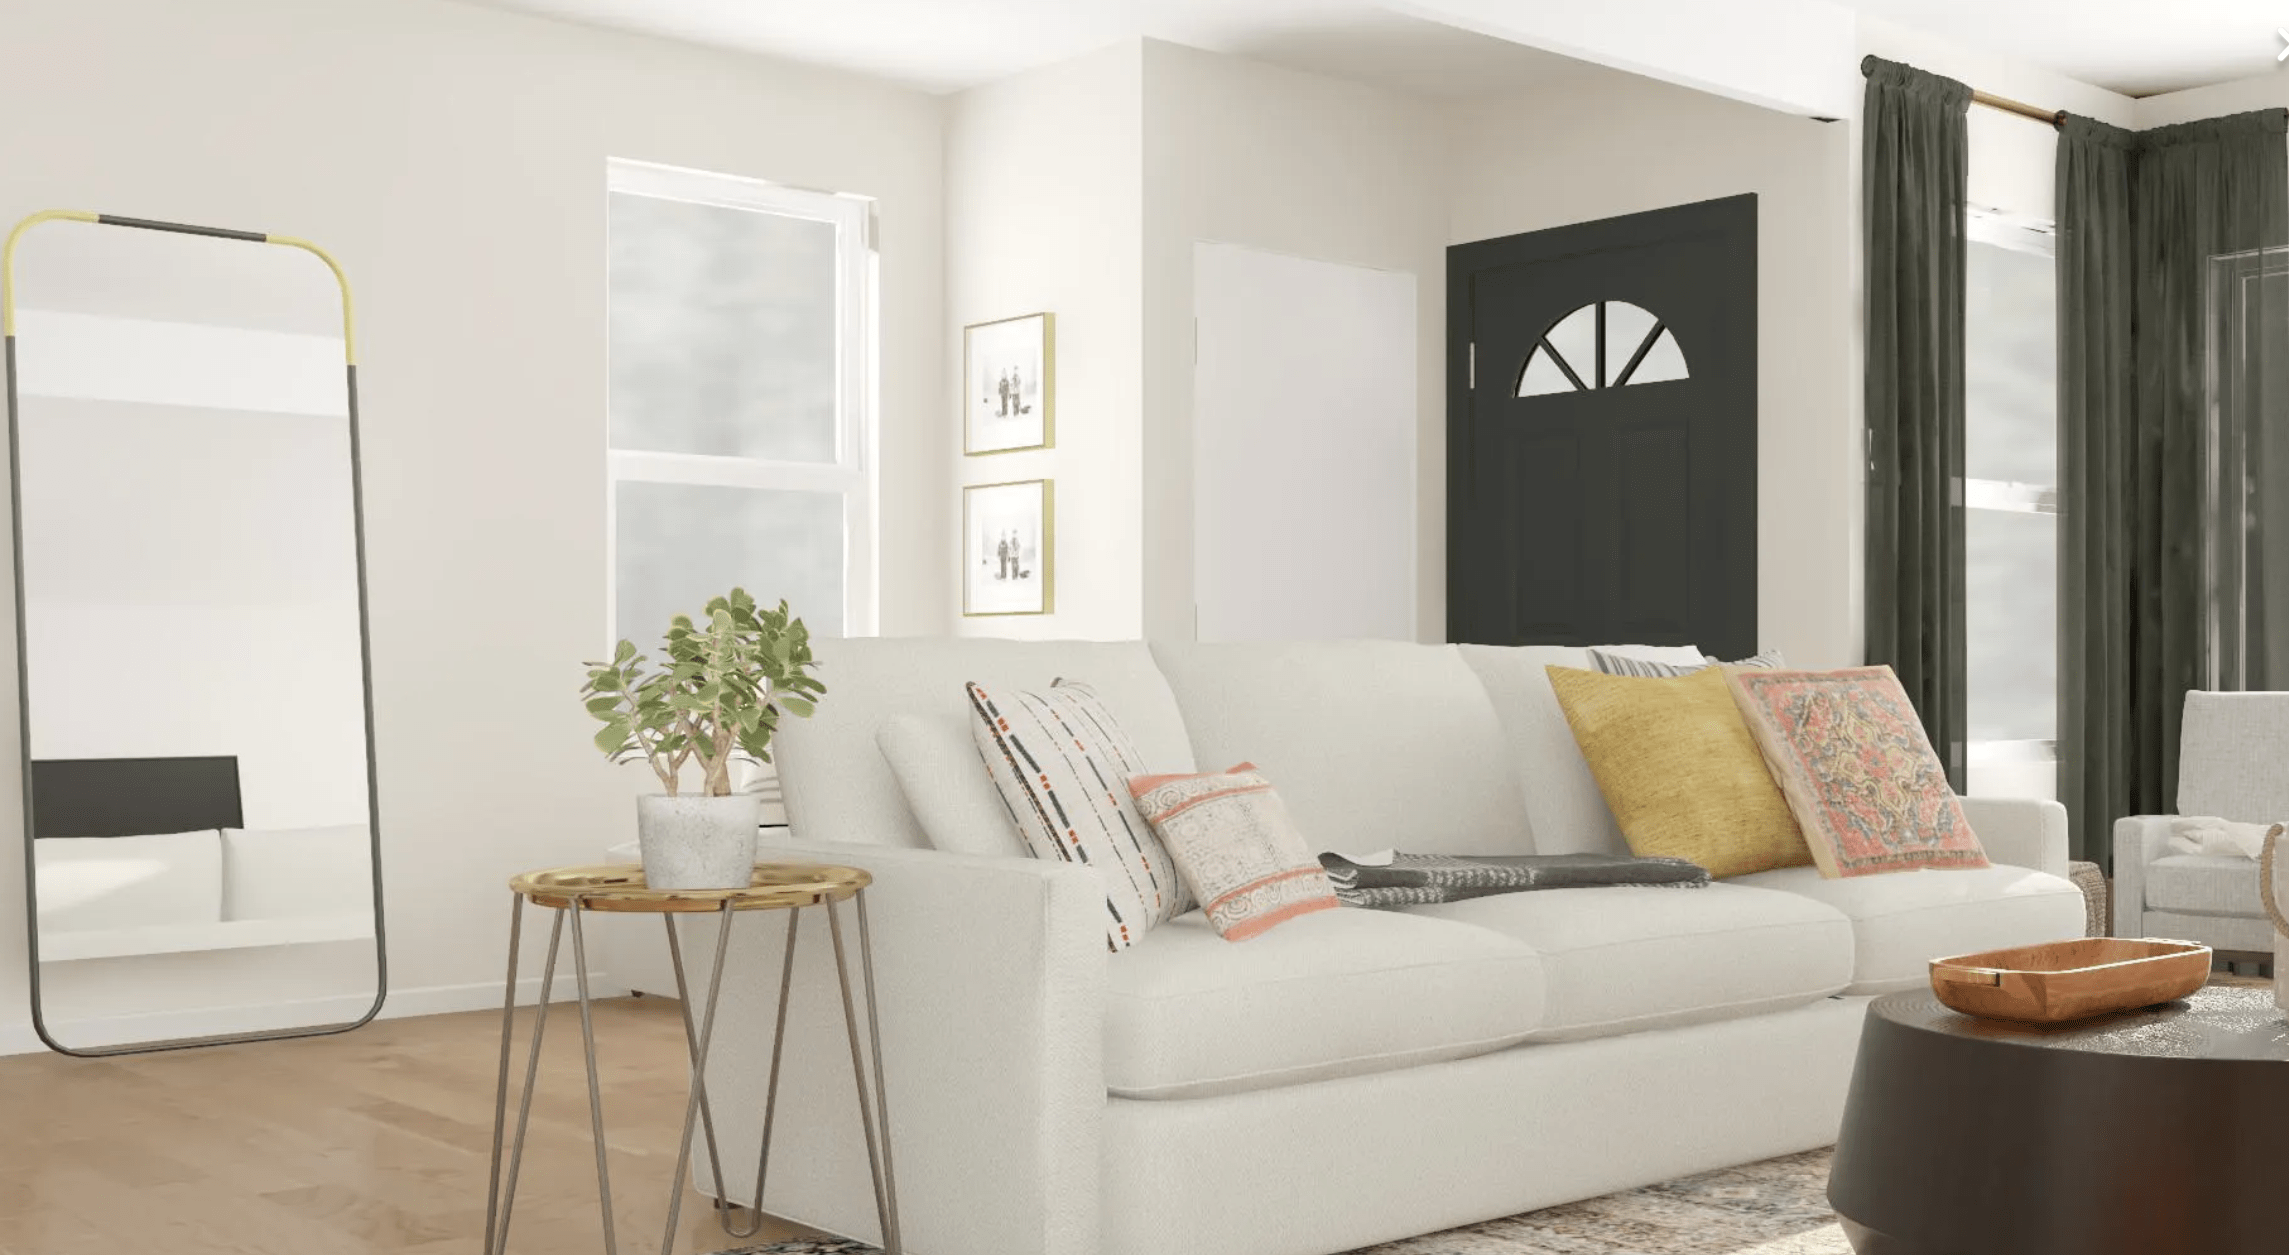 Modsy couch and living room